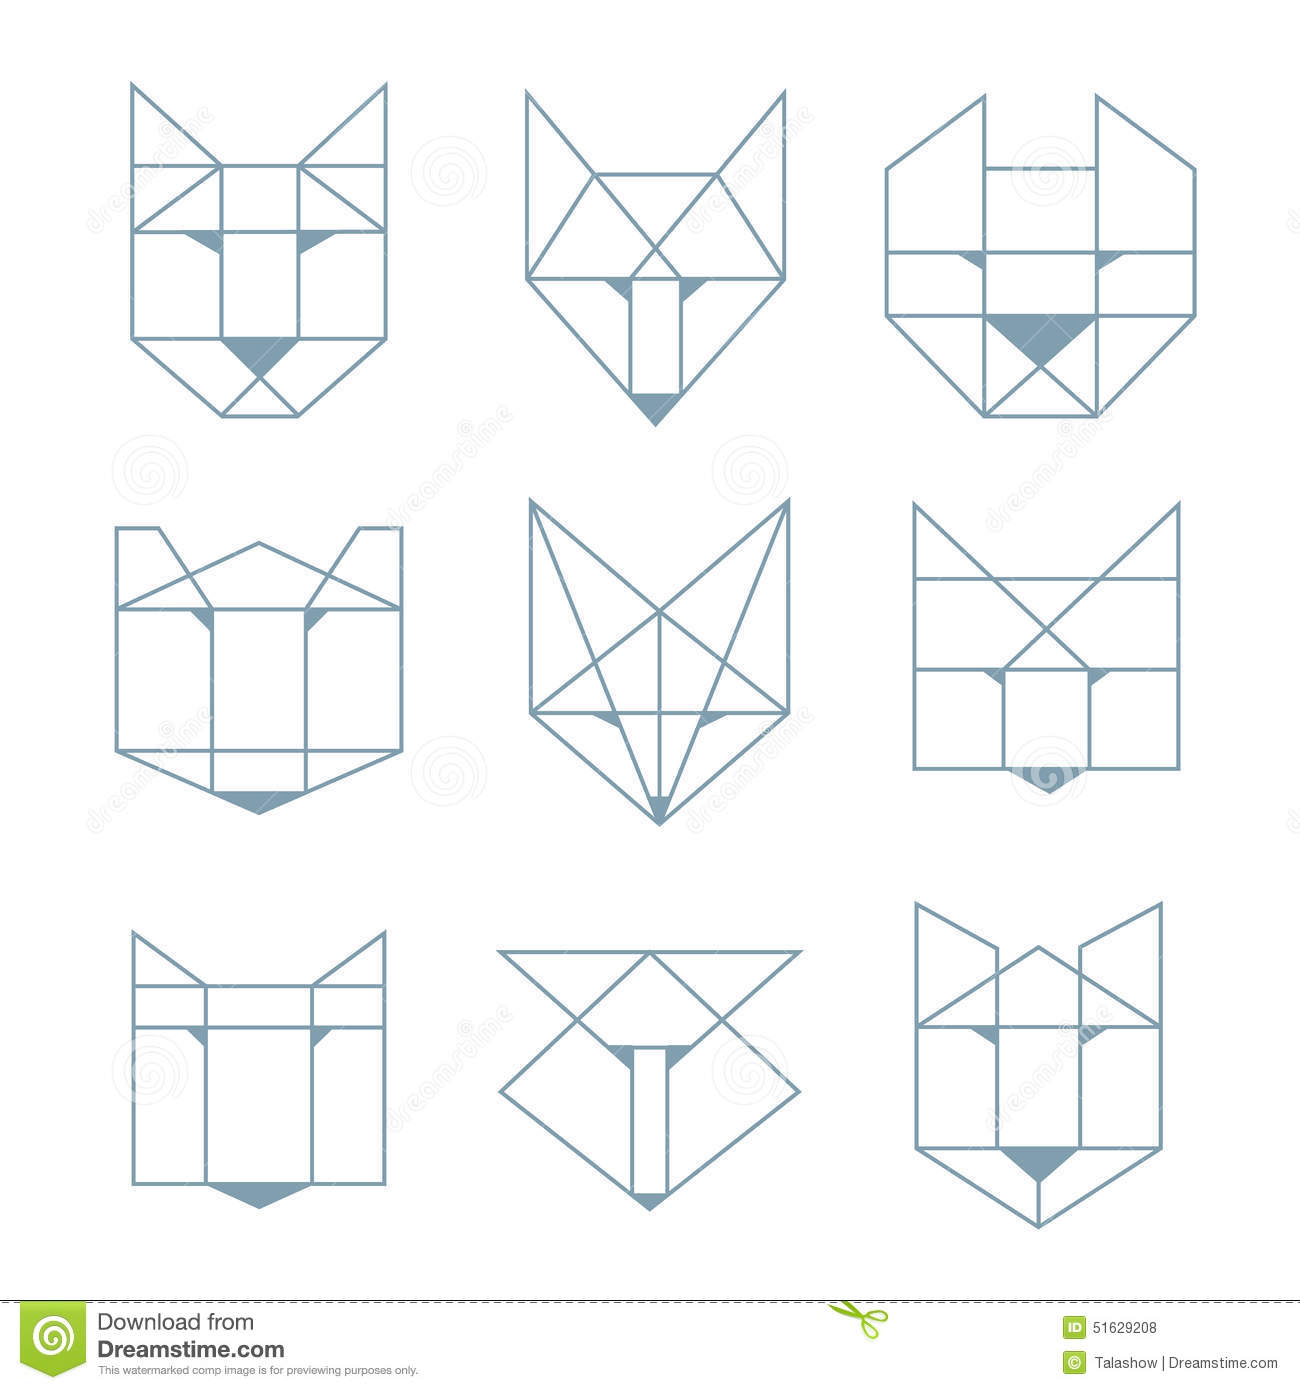 how to draw a frequency polygon class 9